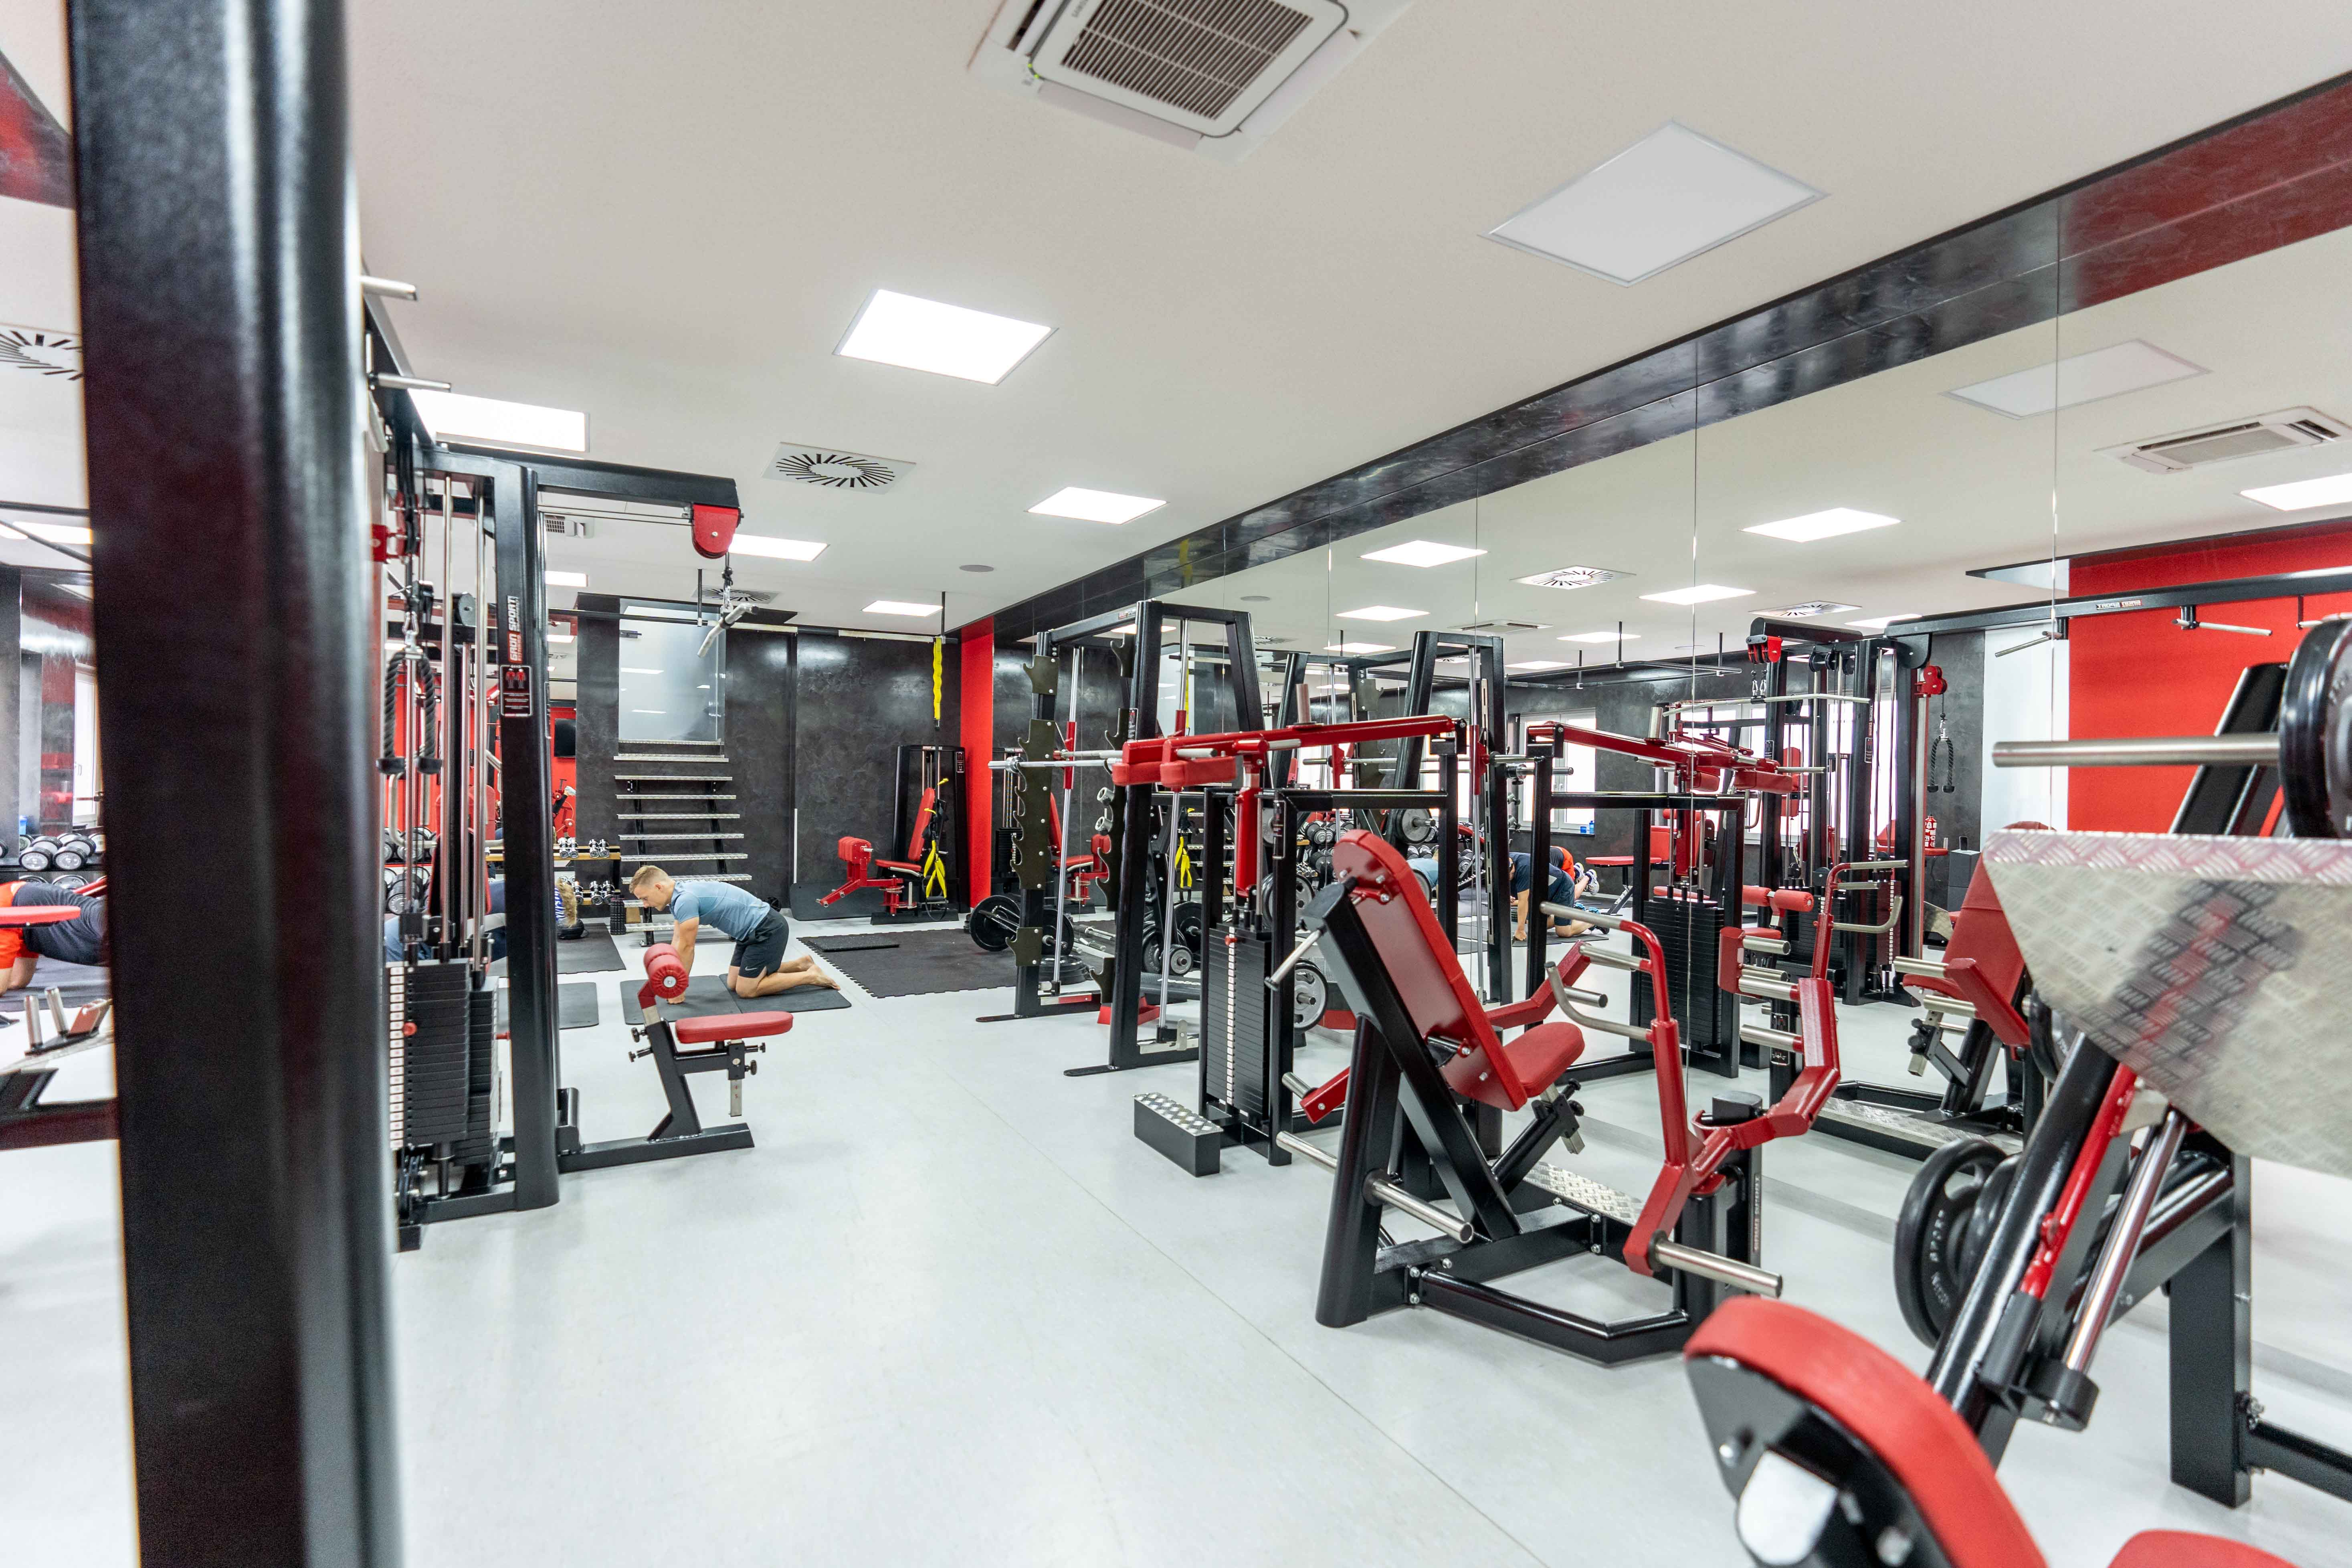 INDIVIDUAL GYM by JKF